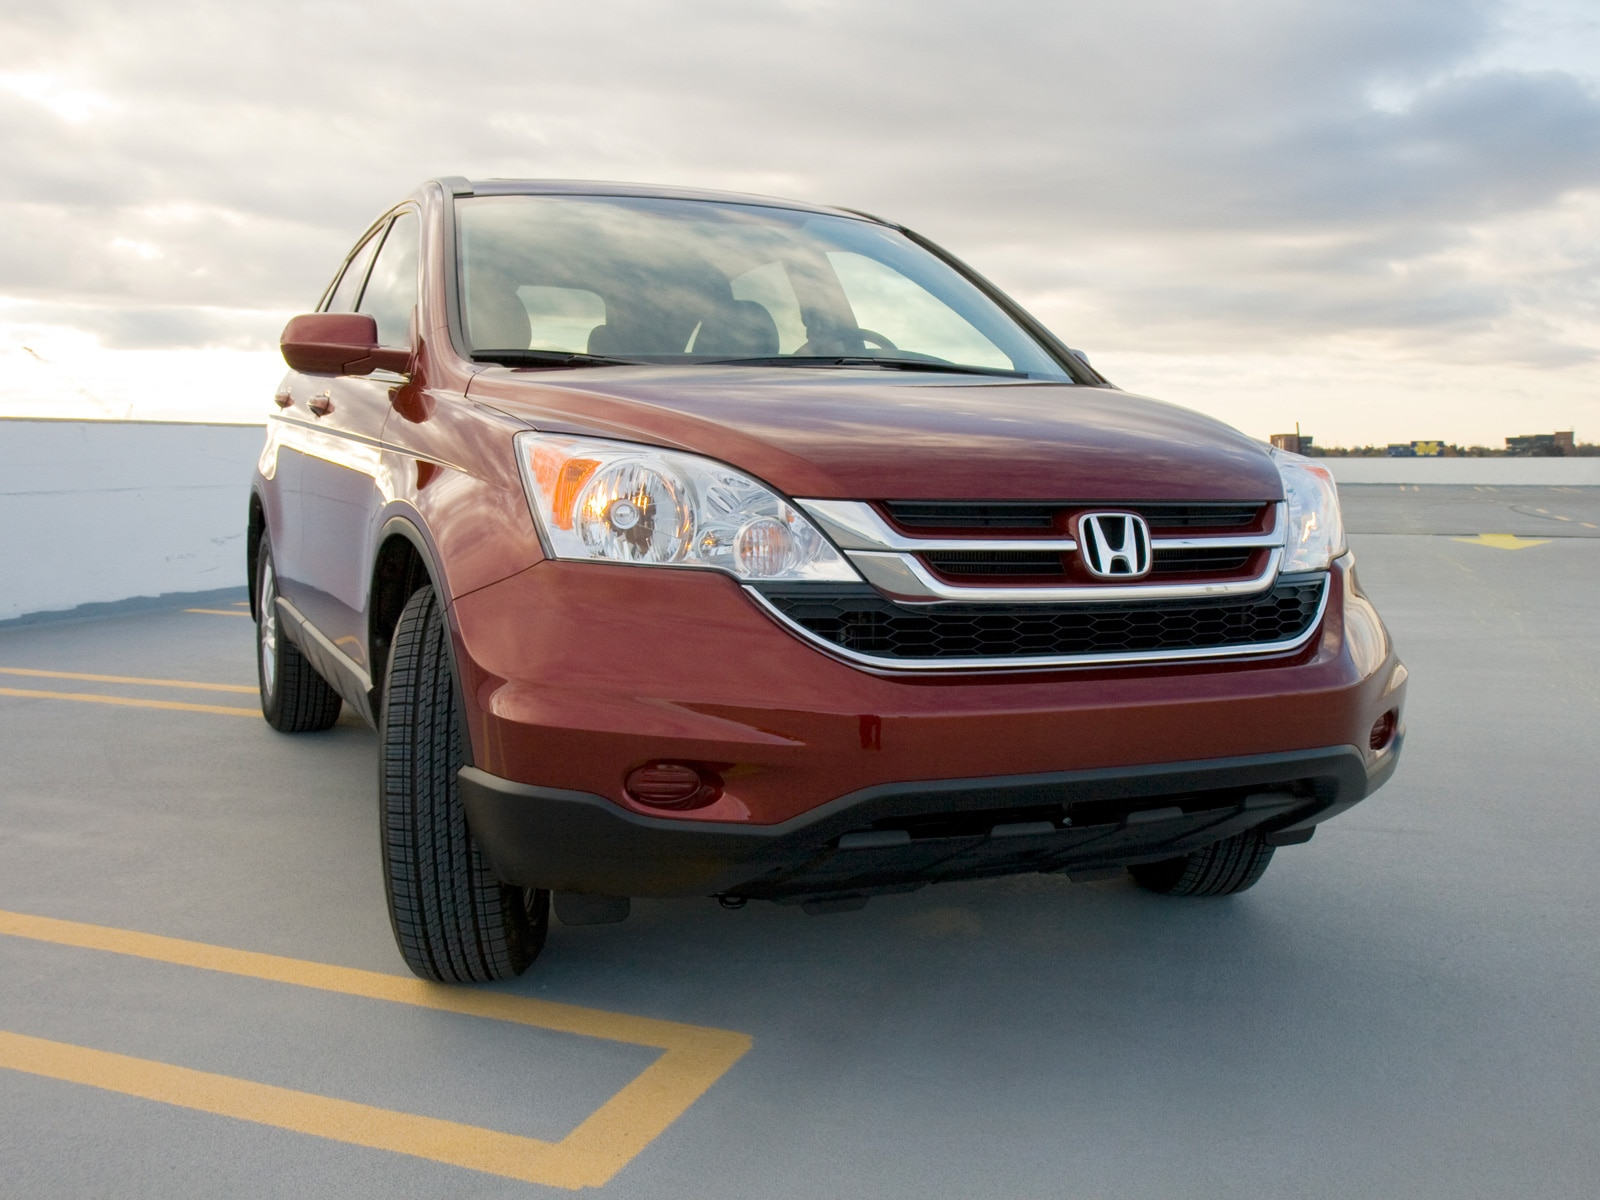 2010 Honda Cr V Ex L 4wd Crossover Suv Review Automobile 2002 Wire Harness This